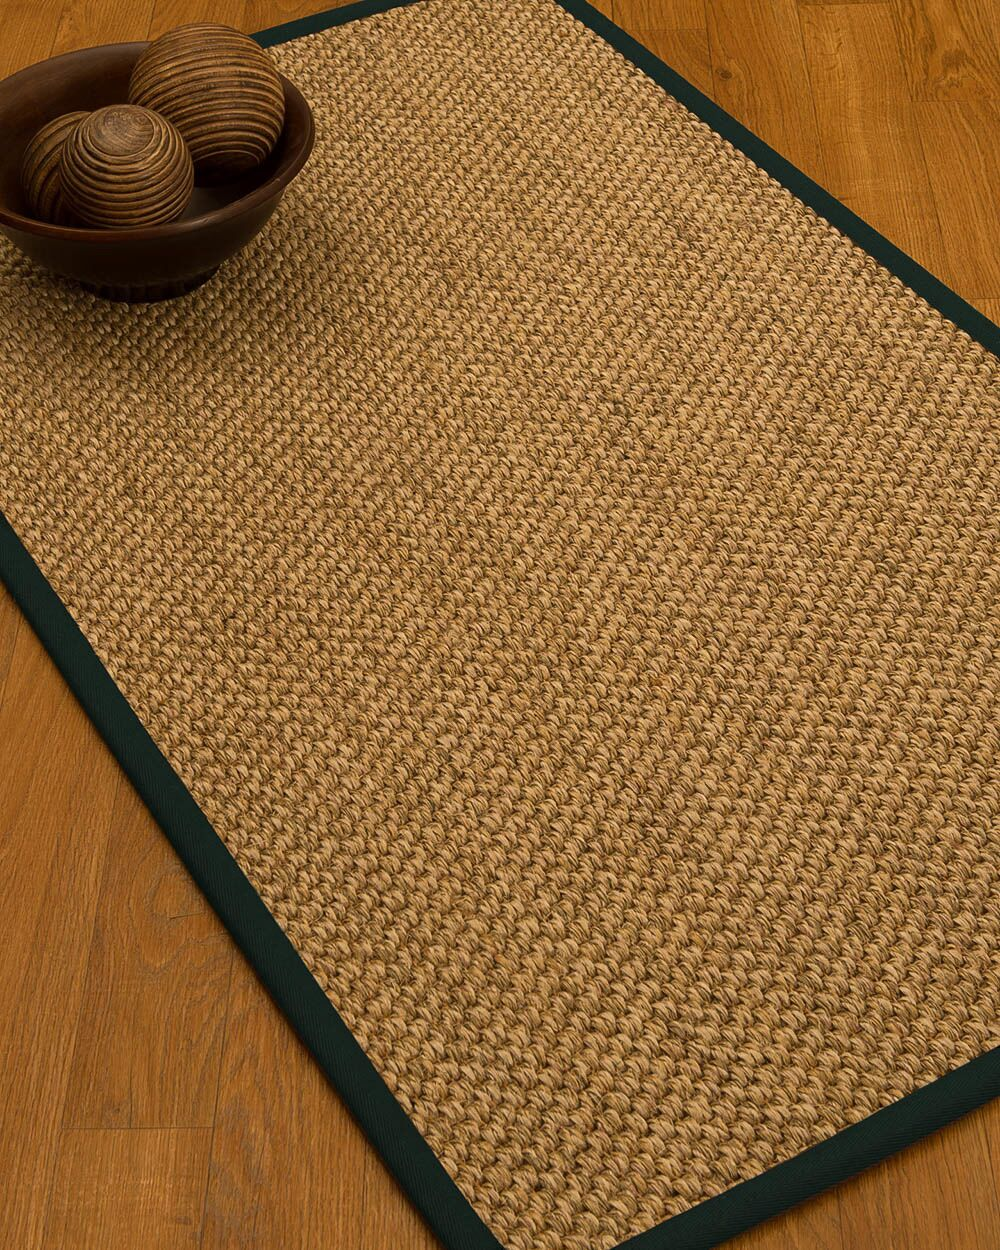 Heier Border Hand-Woven Brown/Metal Area Rug Rug Size: Rectangle 4' x 6', Rug Pad Included: Yes